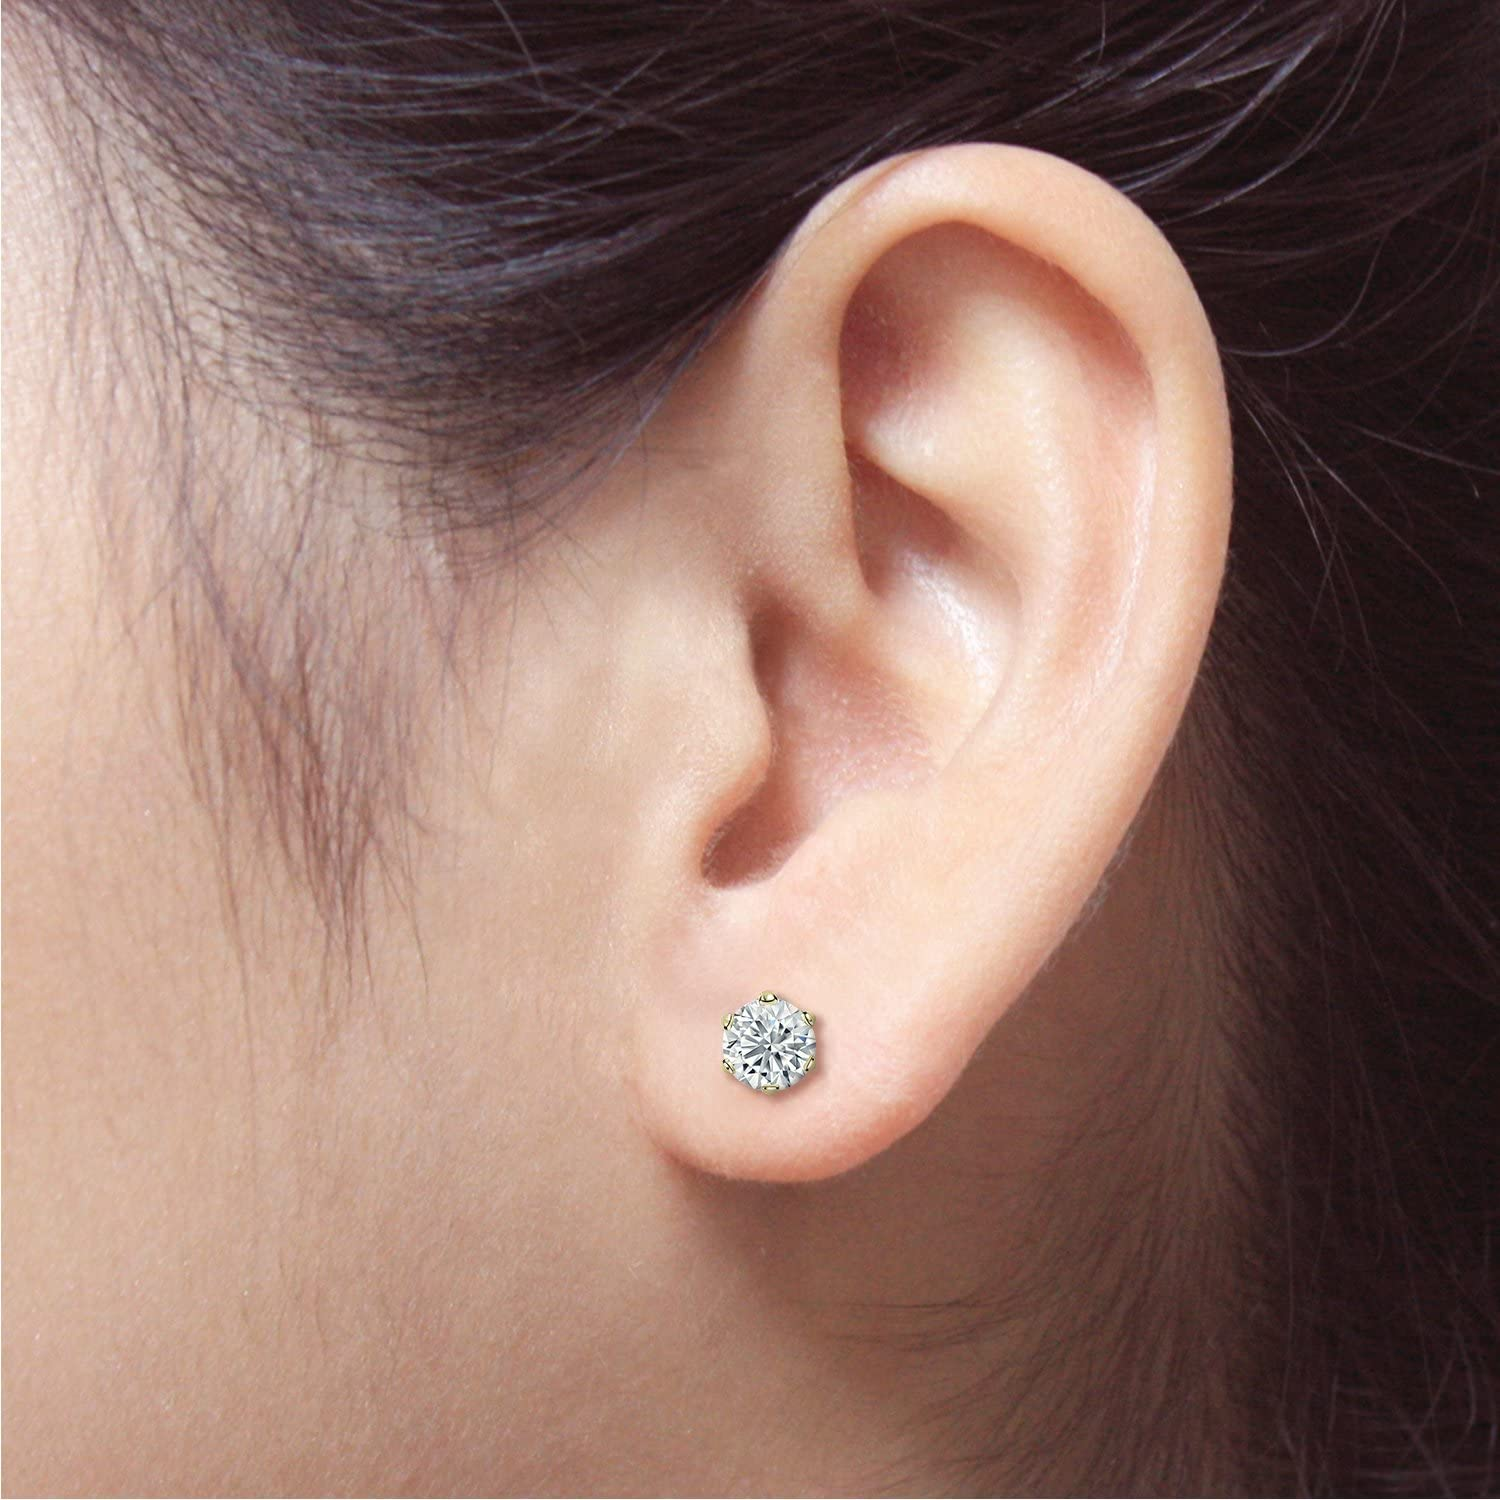 1//8-1cttw,Excellent Quality 14k Yellow Gold Round Diamond Simulant CZ SINGLE STUD Earring 6-Prong